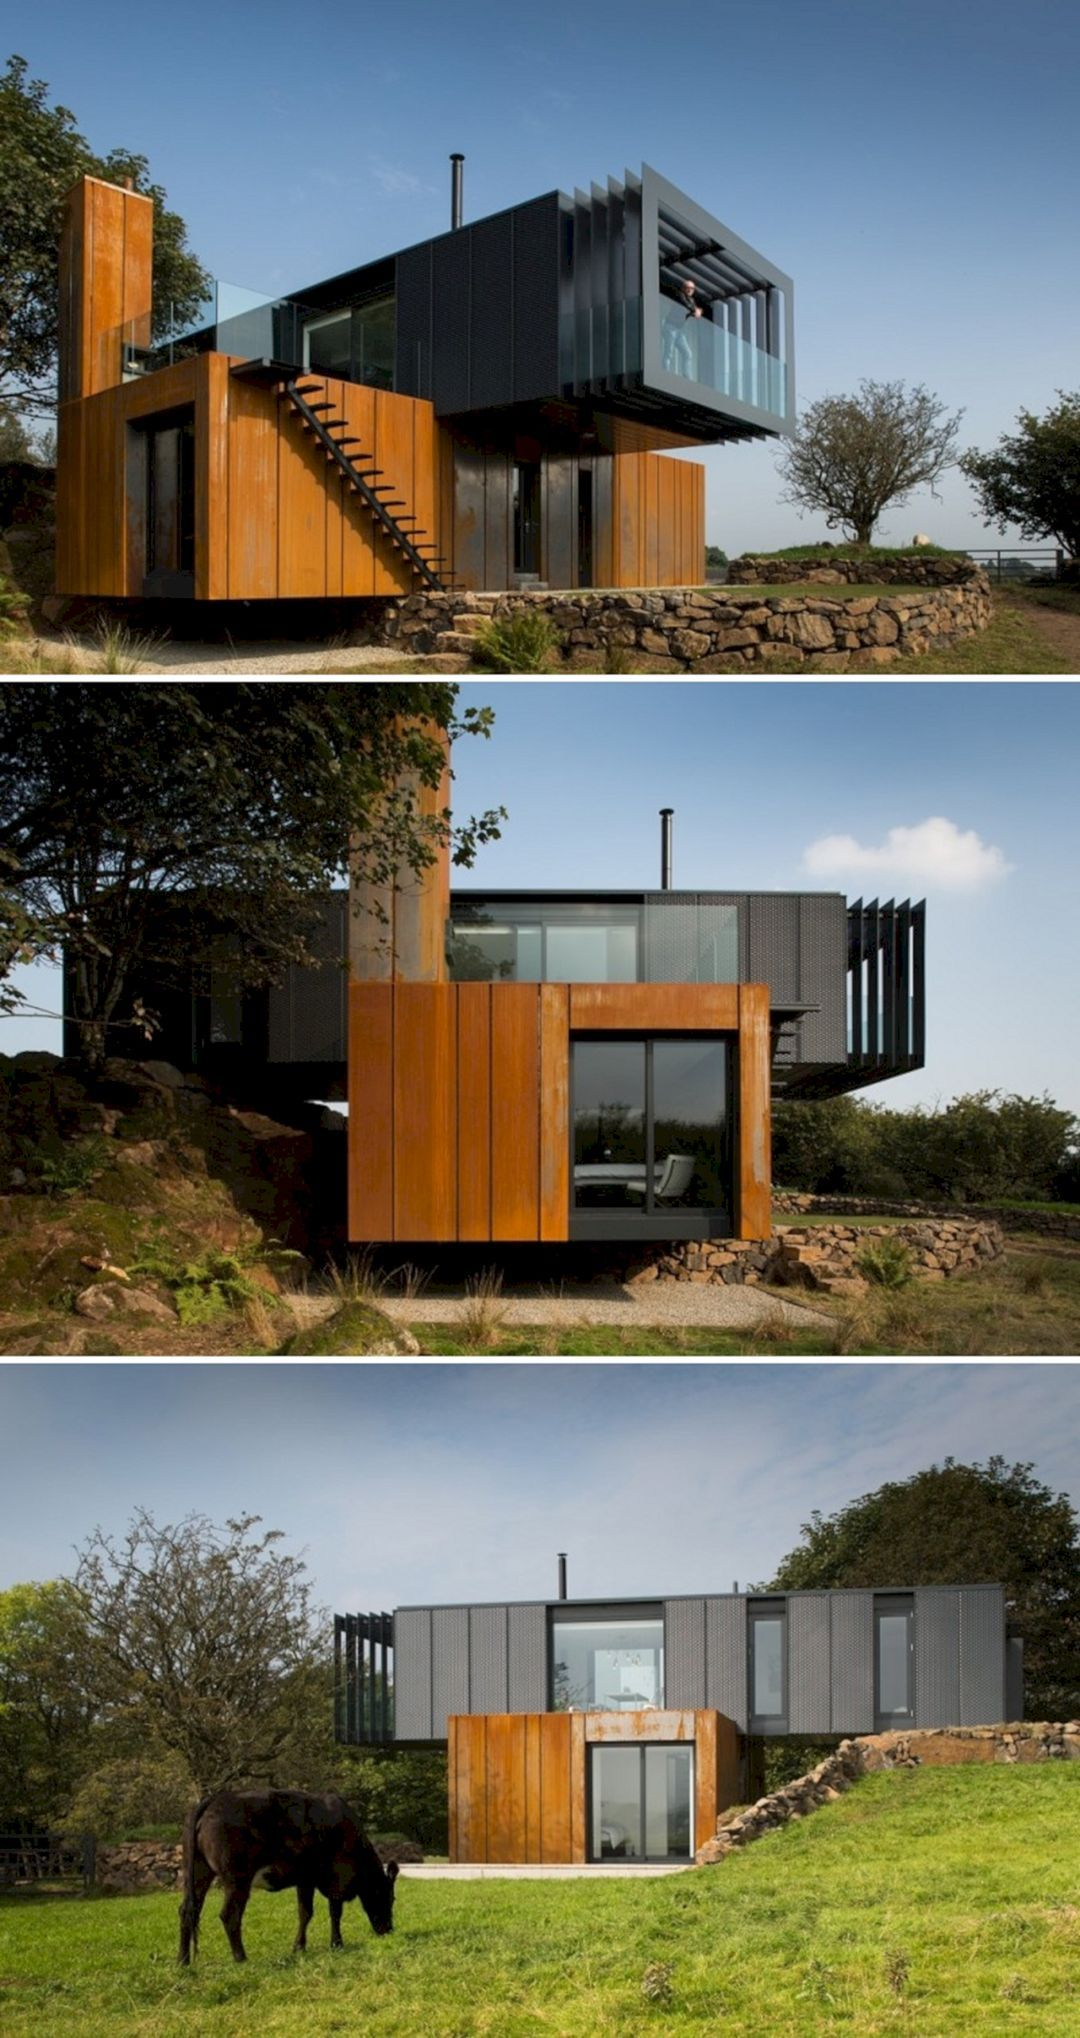 Rural home made out of shipping containers northern ireland featured on grand designs also top modern and gorgeous container houses design ideas dream rh pinterest